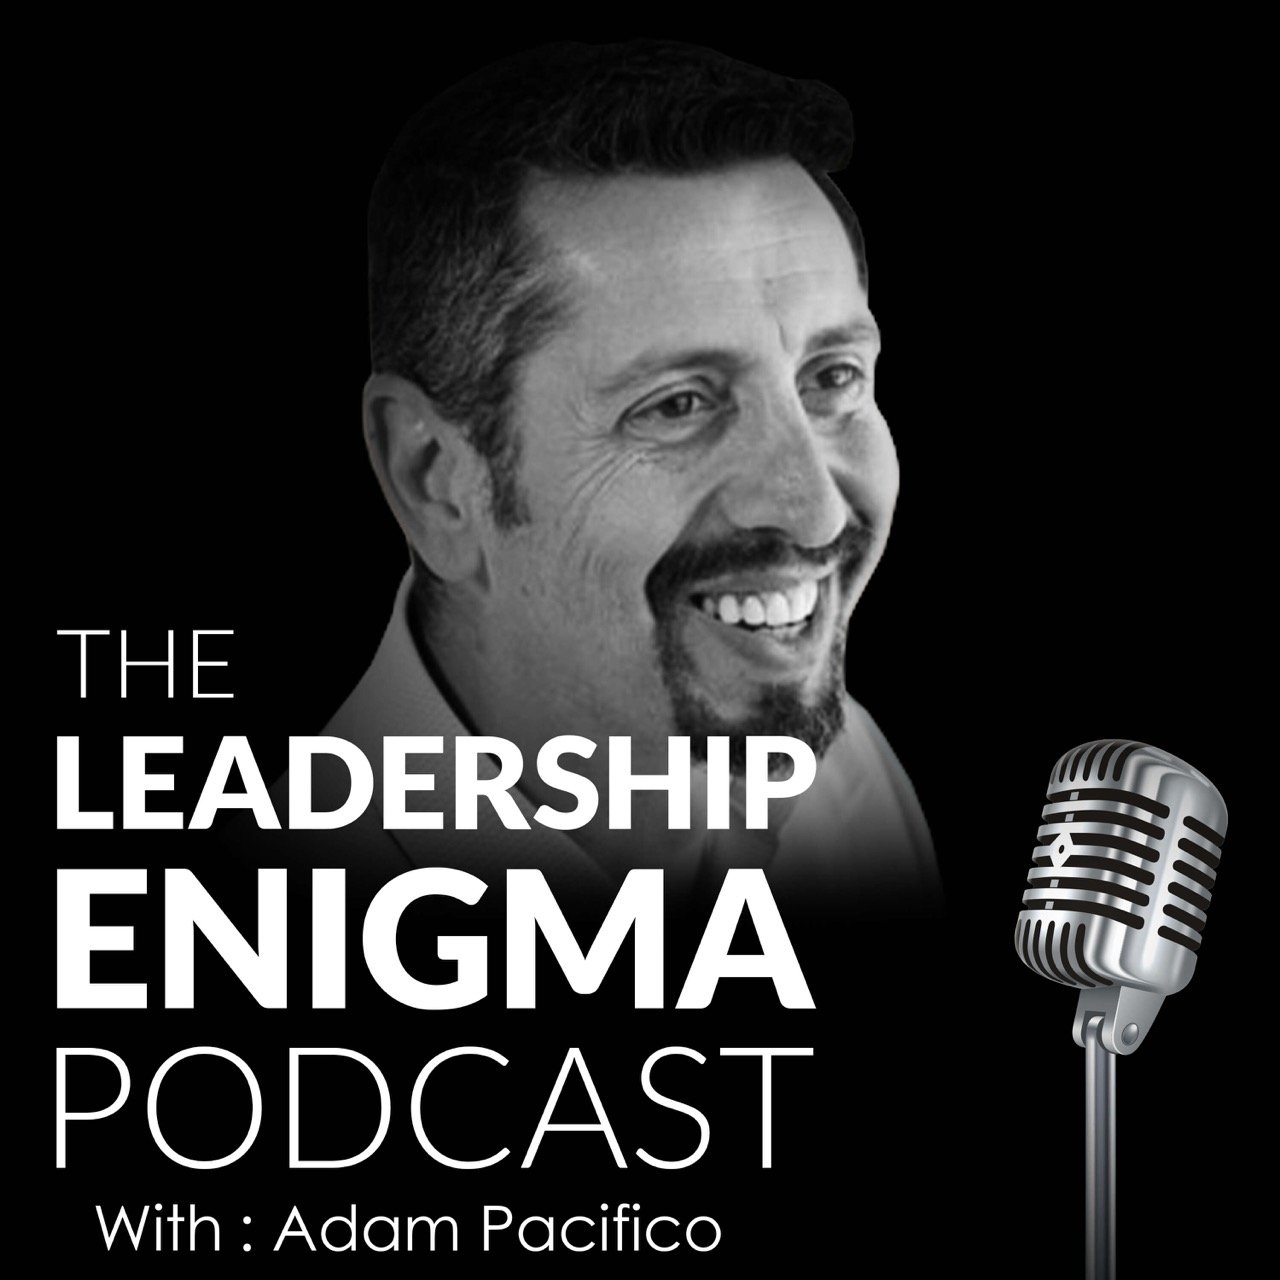 Listen to us on The Leadership Enigma podcast with Adam Pacifico